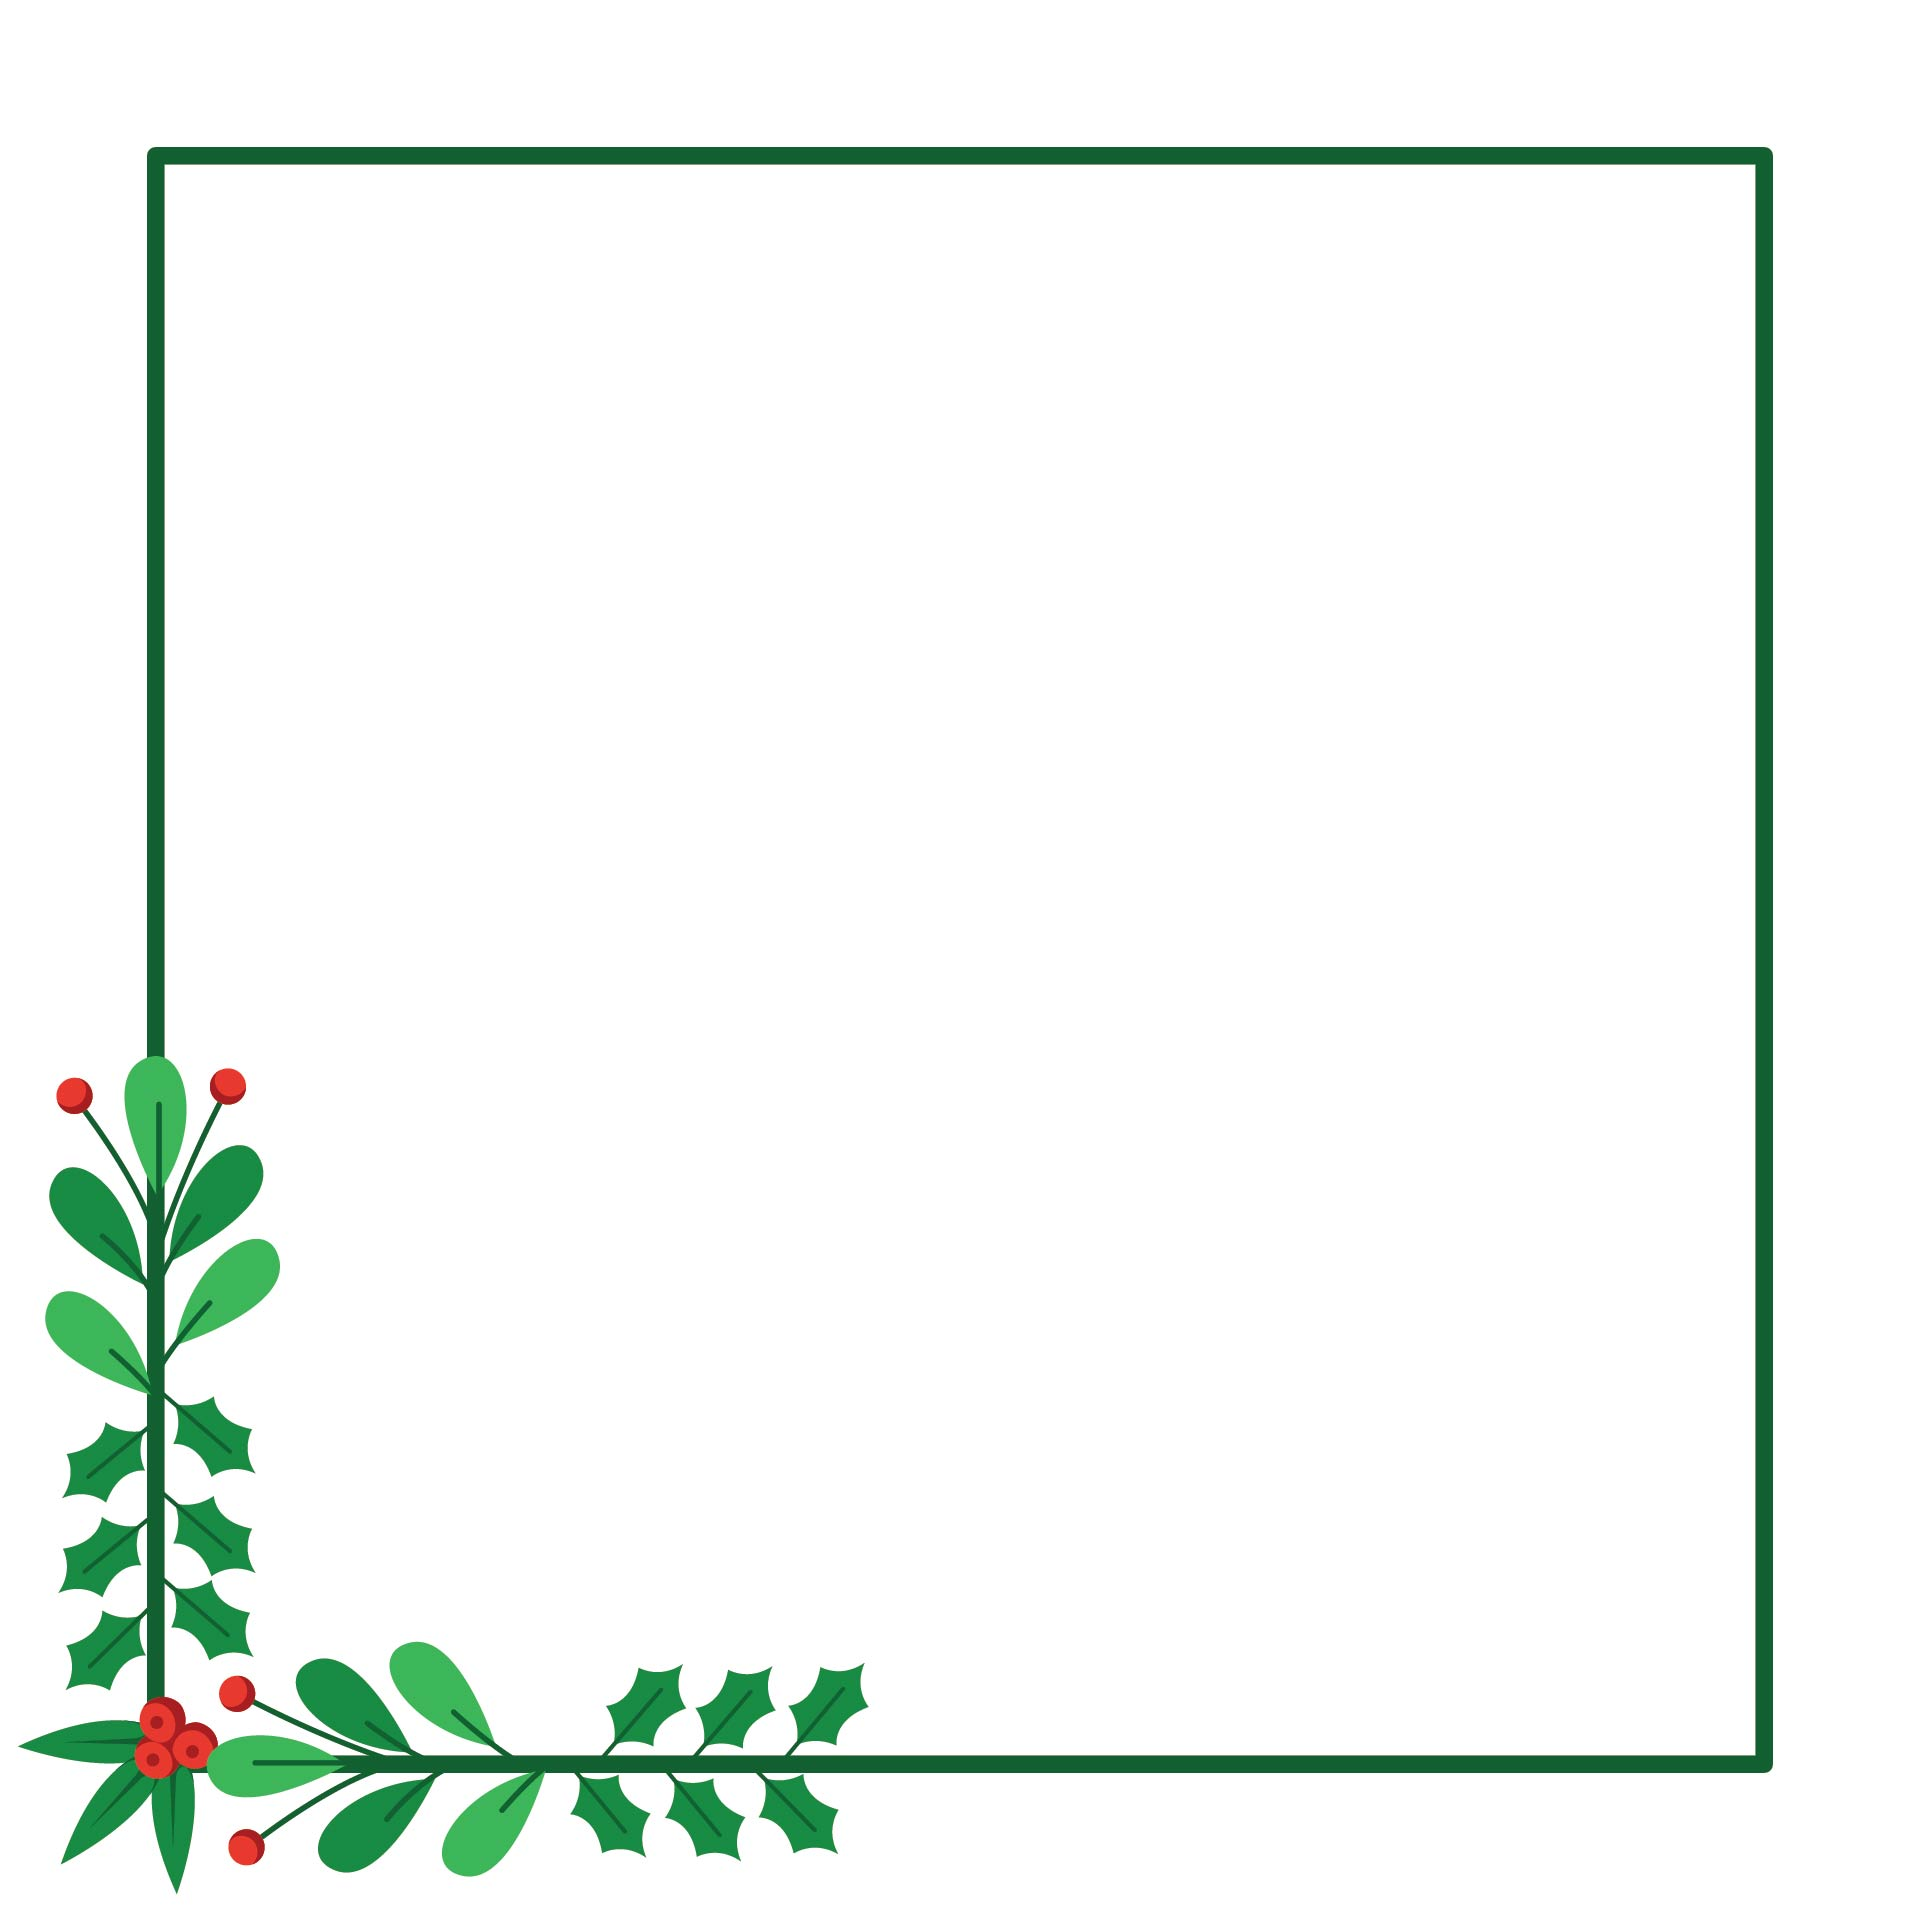 Paper Border Free - Christmas Border 7 Best Images of Printable Paper ...